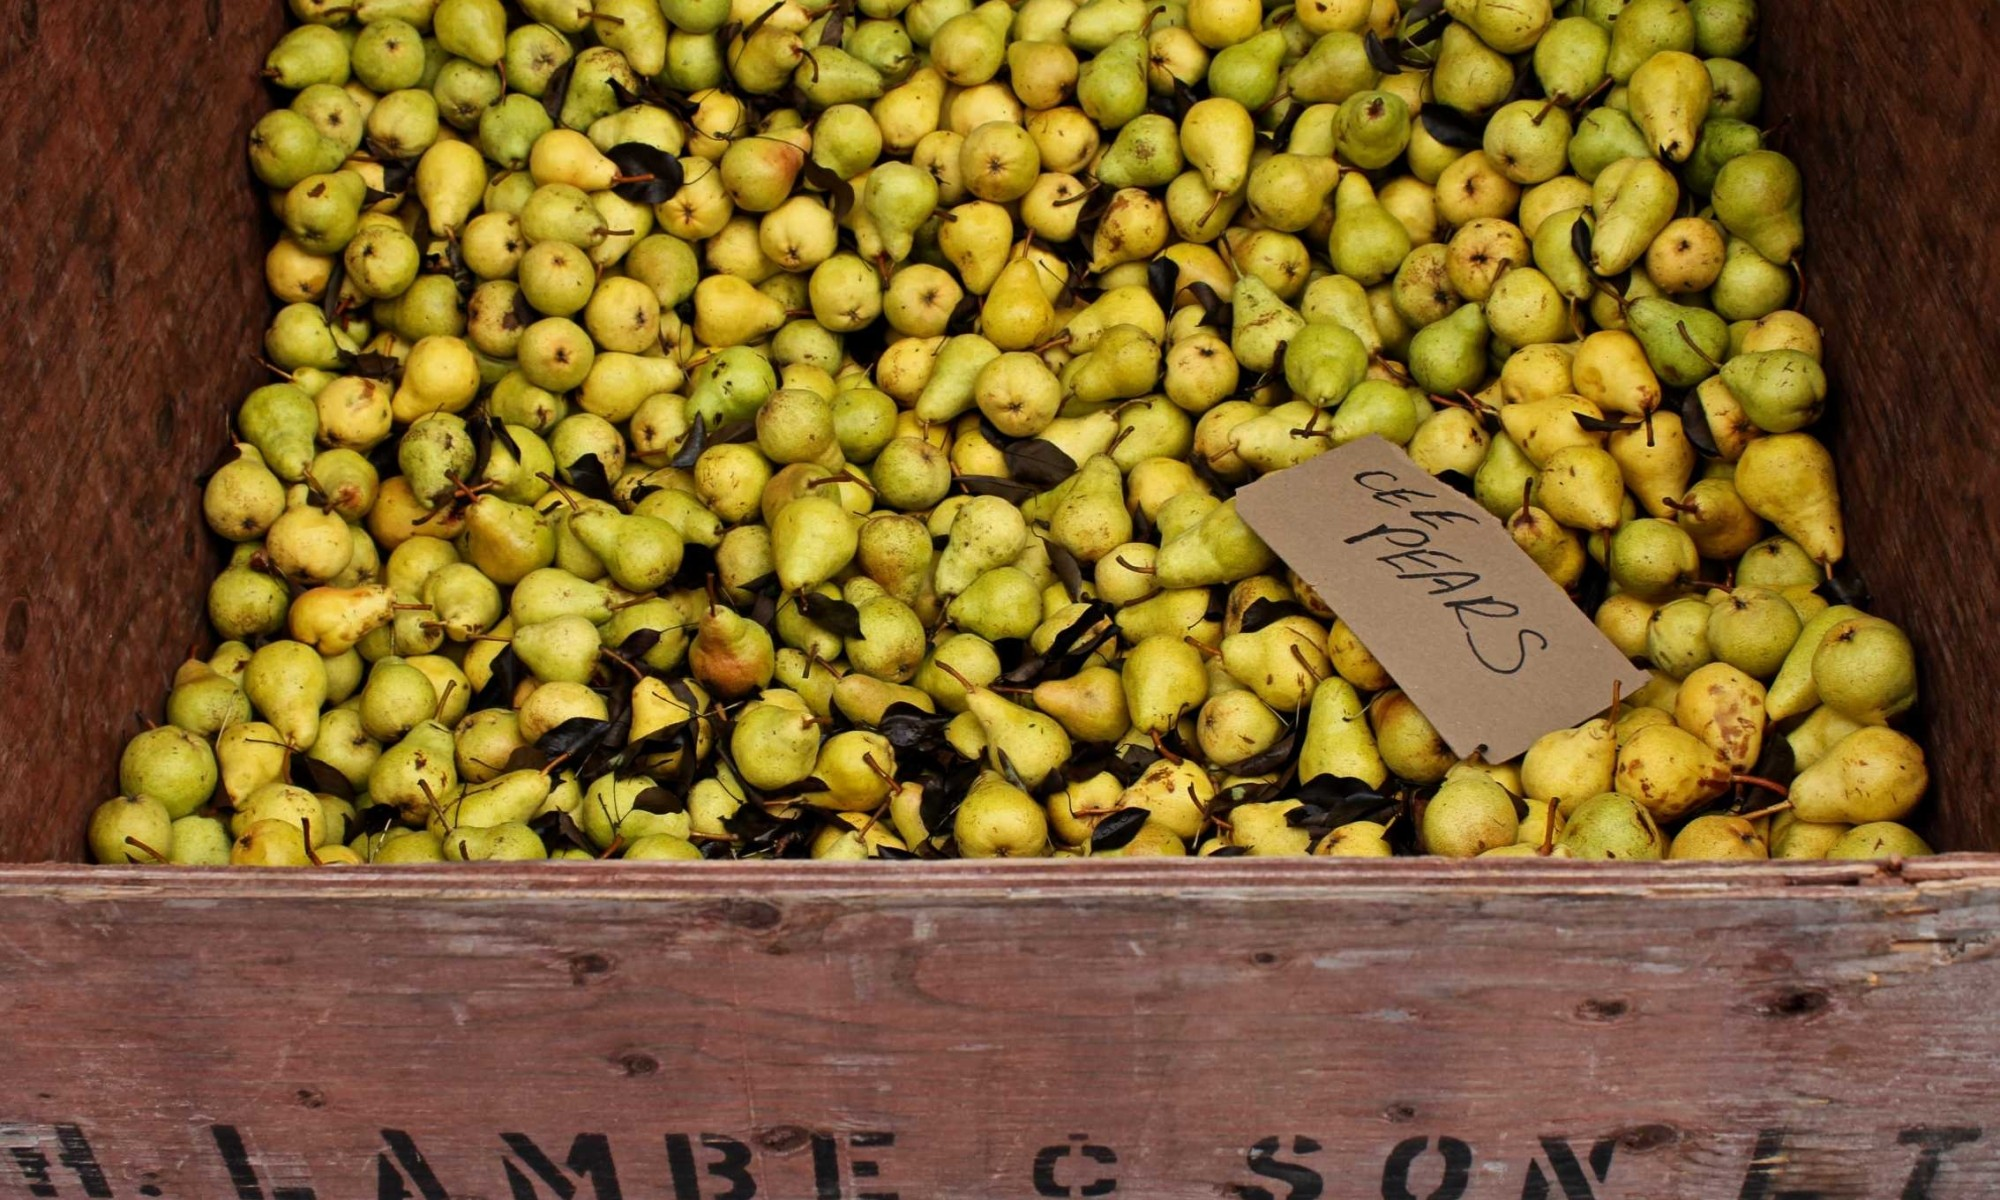 Crate of pears